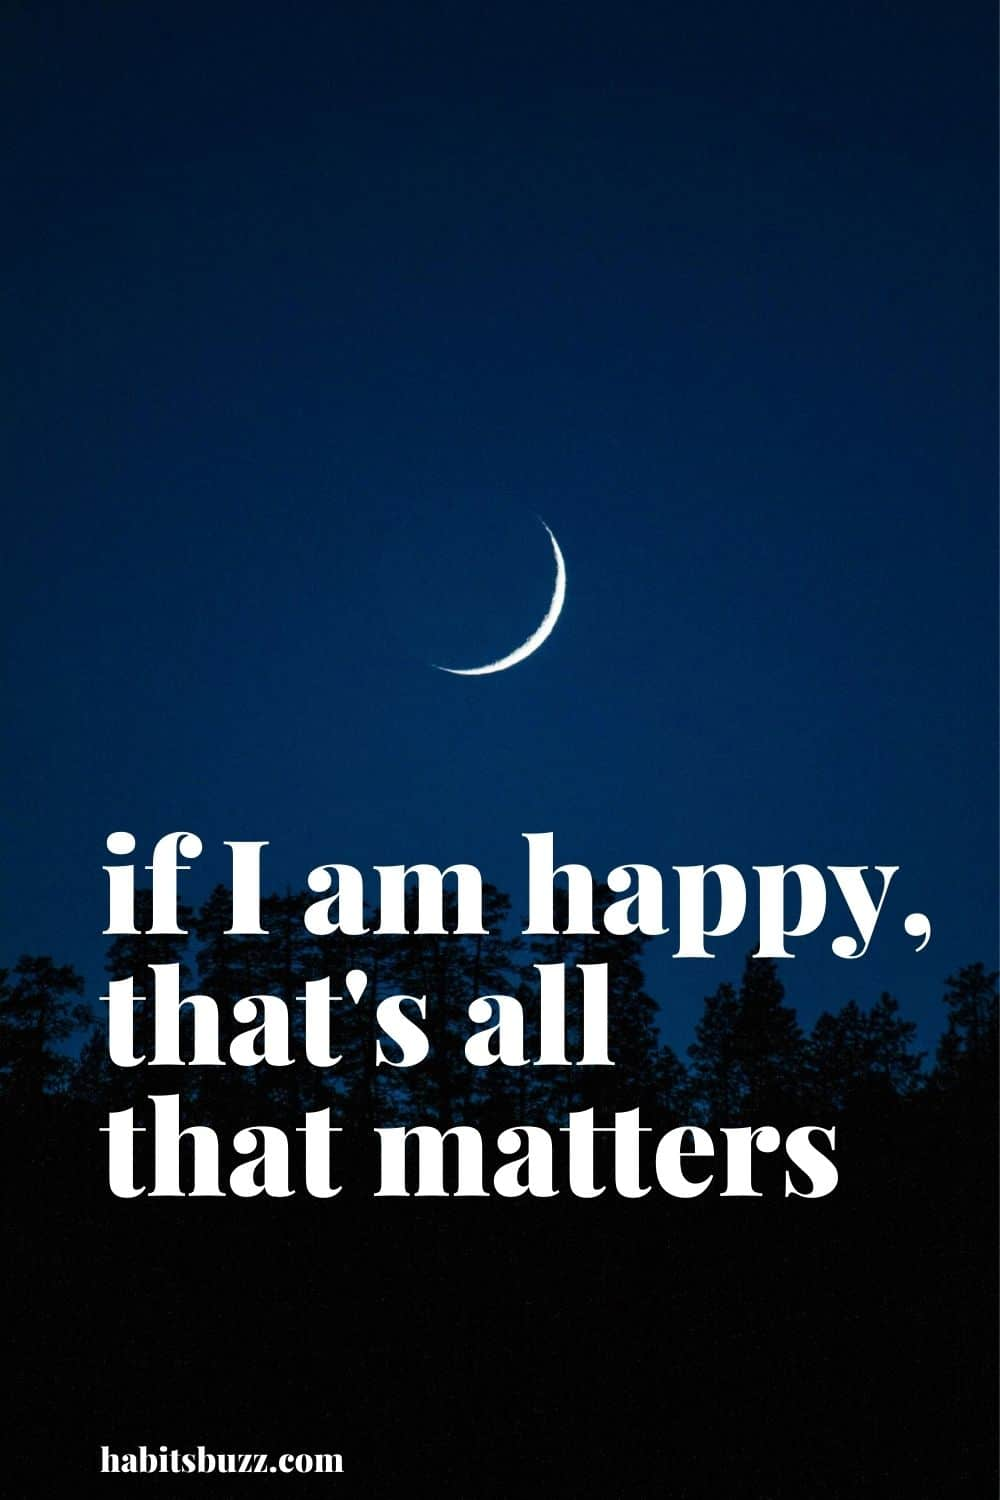 if I am happy, that's all that matters -mantras to get through bad days in life